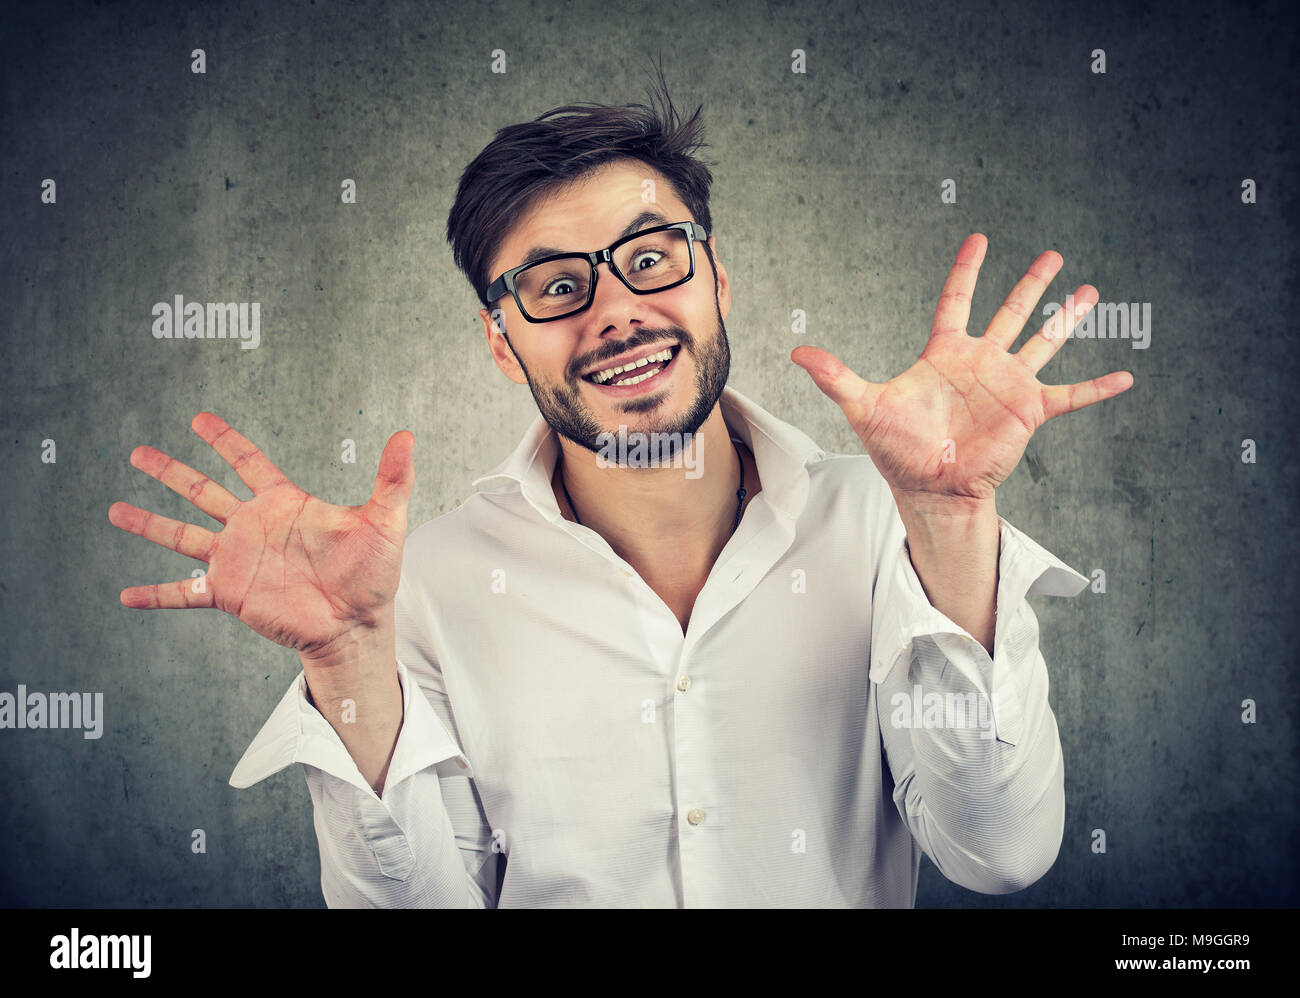 Young excited man making faces and gesturing in surprise looking at camera. - Stock Image